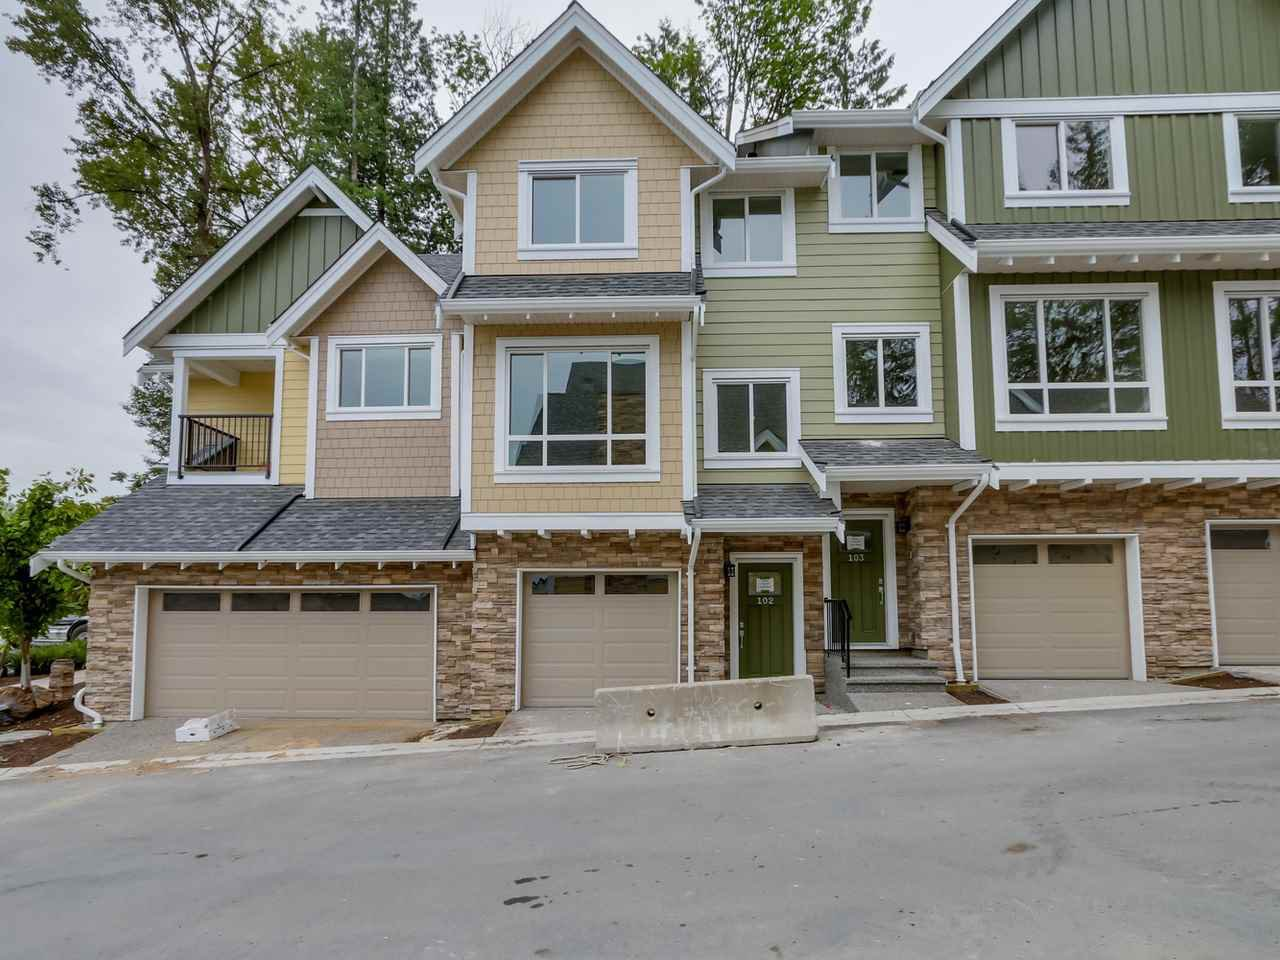 """Main Photo: 401 1405 DAYTON Avenue in Coquitlam: Burke Mountain Townhouse for sale in """"ERICA"""" : MLS®# R2084326"""